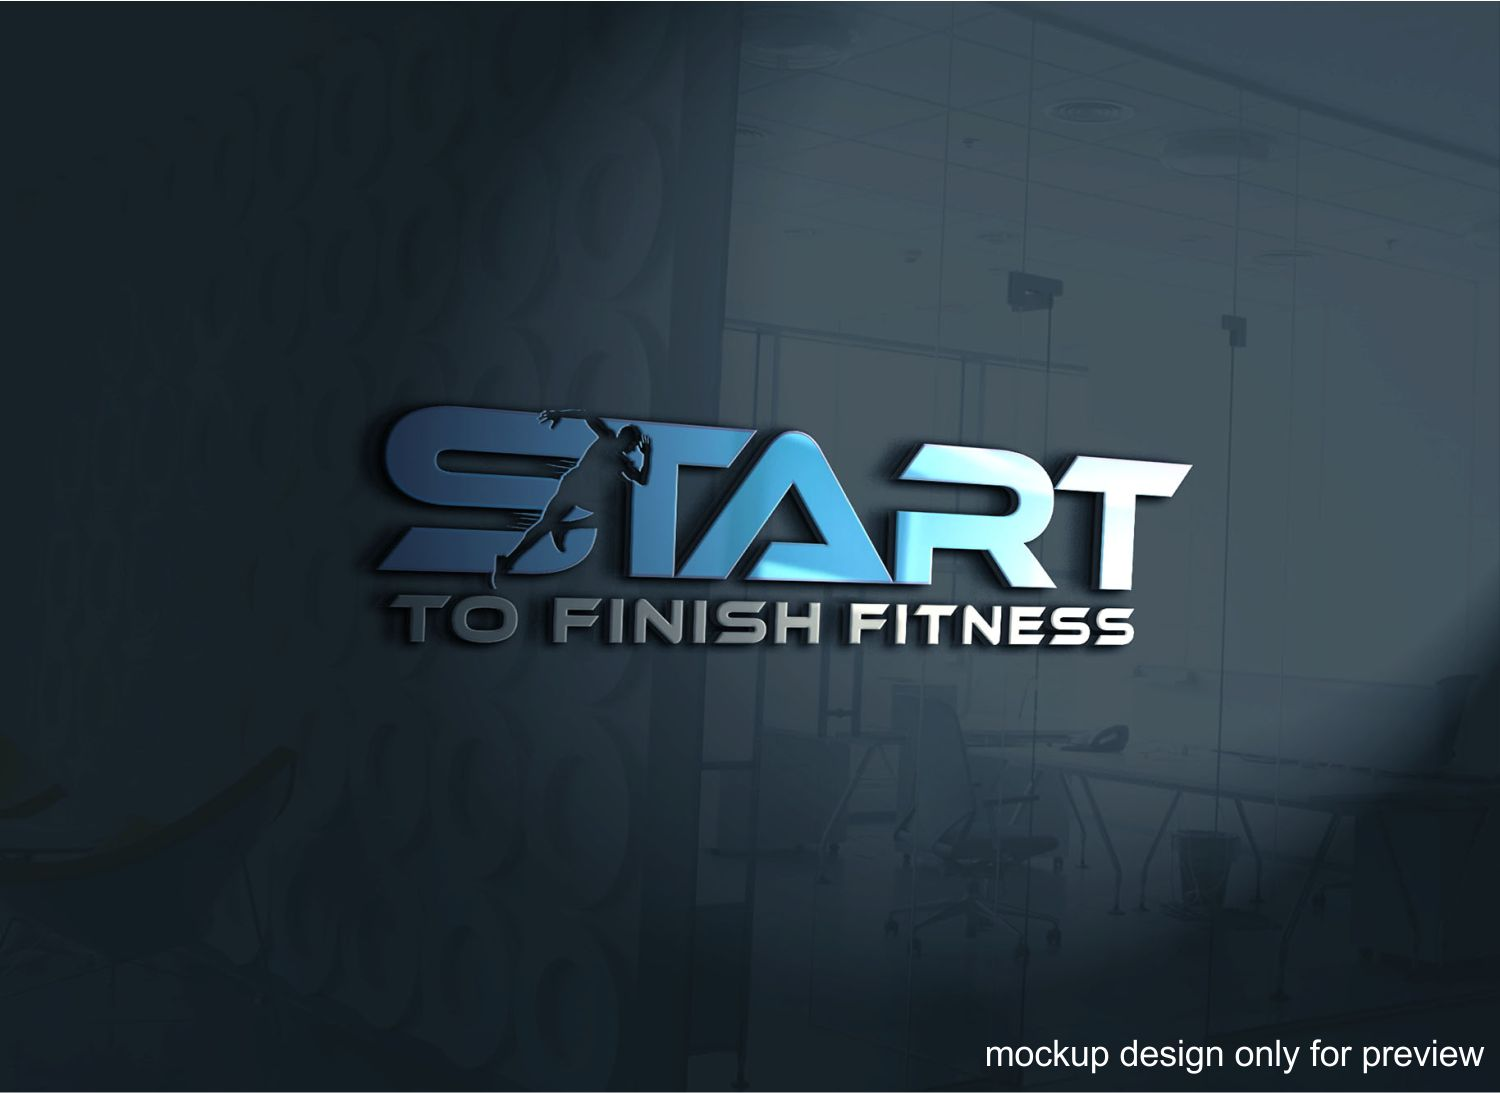 Serious Modern Logo Design For Start To Finish Fitness By